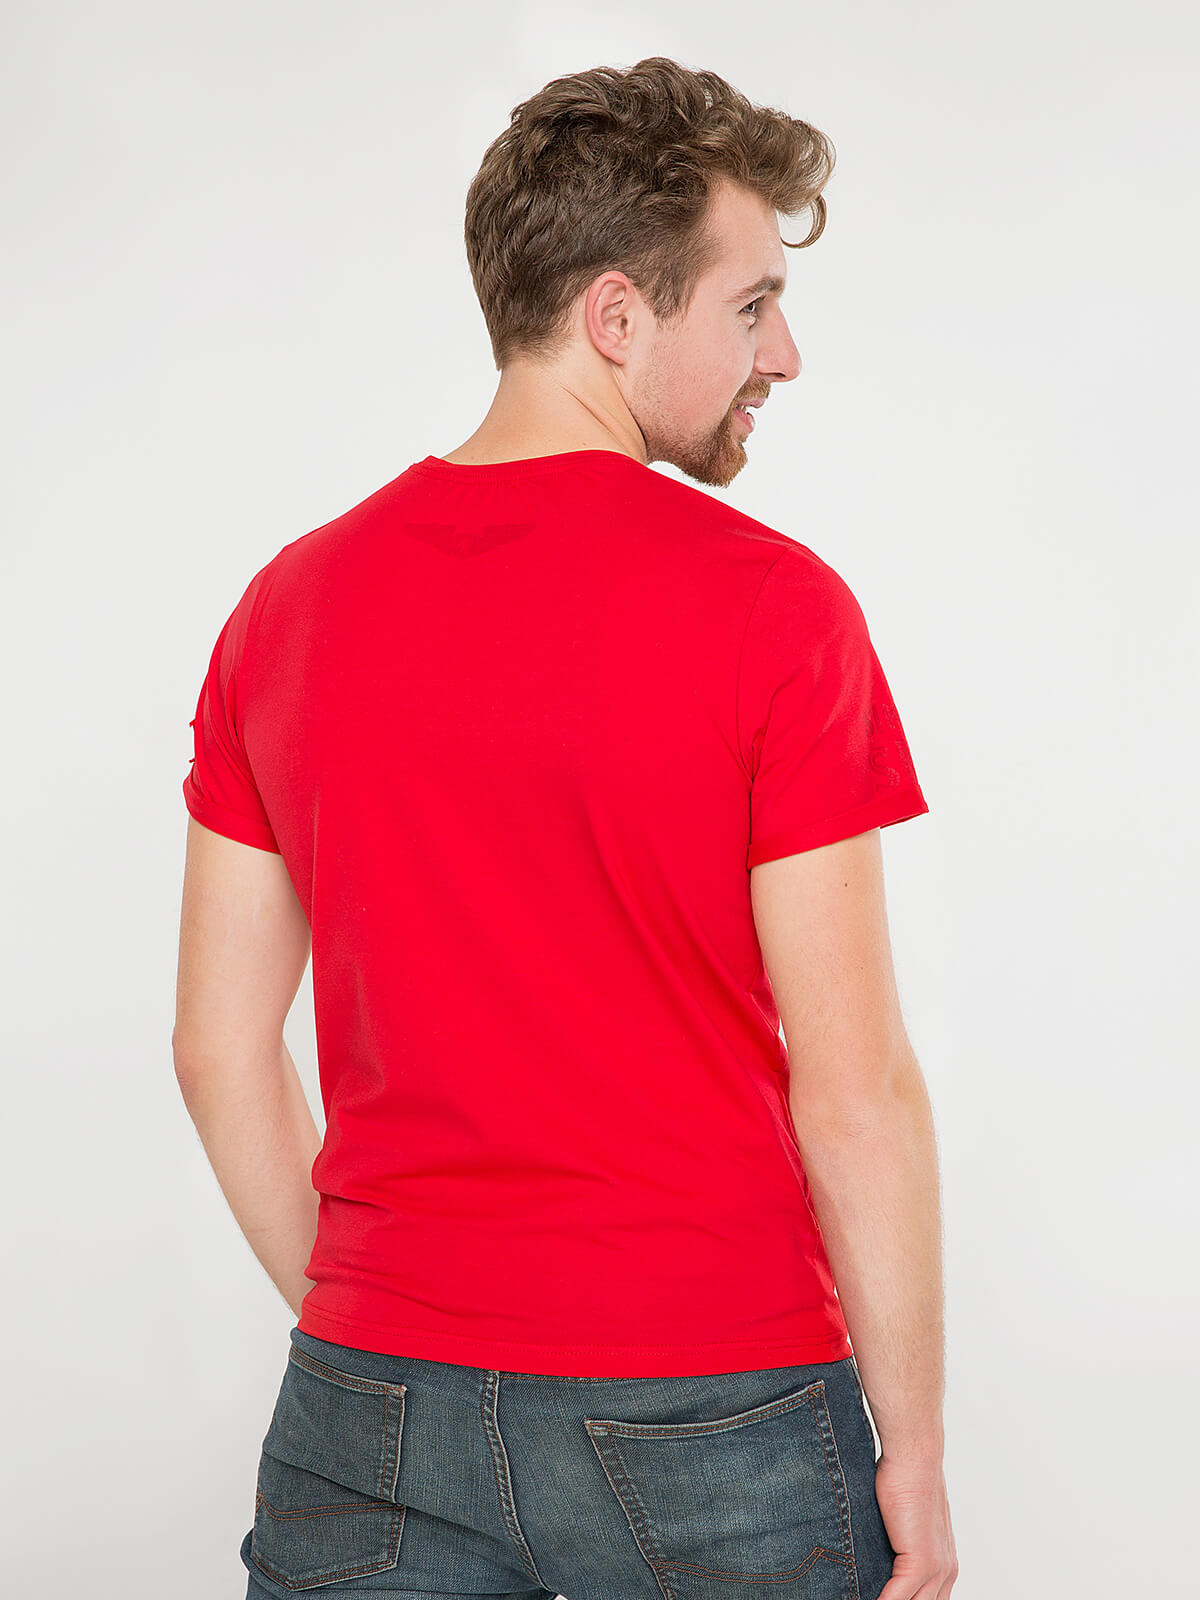 Men's T-Shirt Sikorsky. Color red.  Material: 95% cotton, 5% spandex.